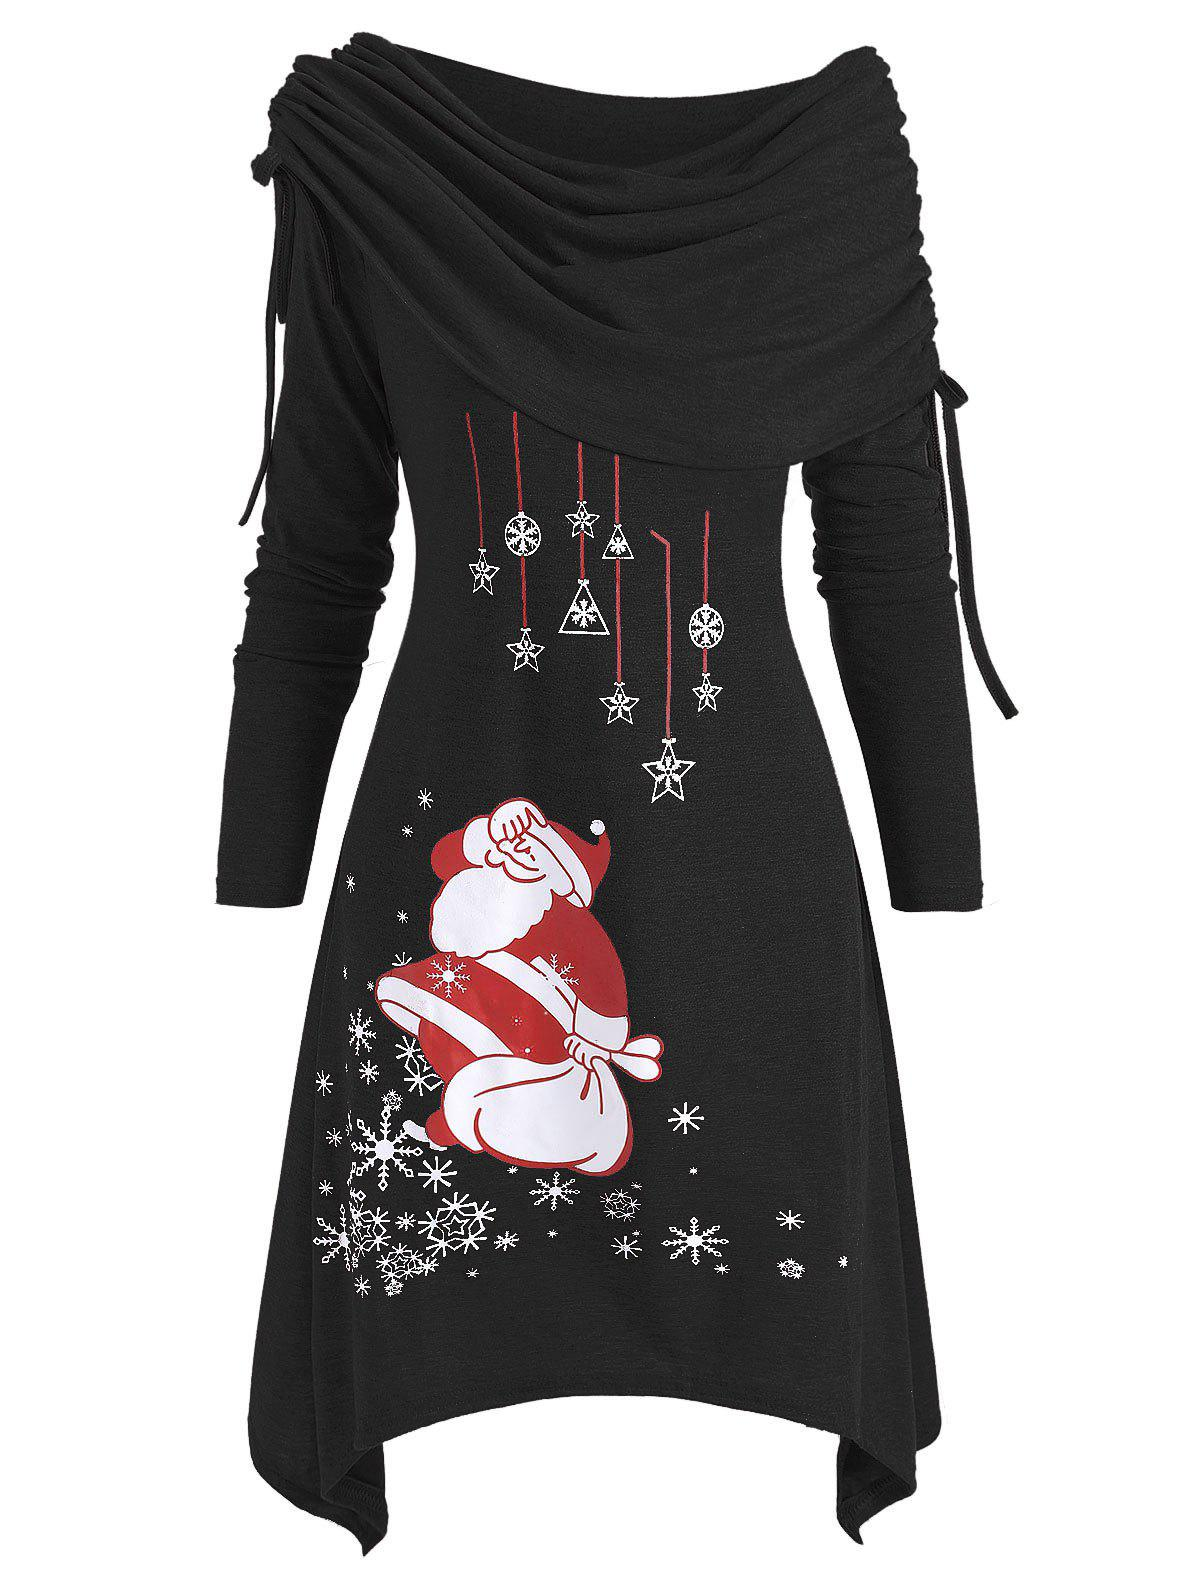 Chic Christmas Santa Claus Cinched Off Shoulder Asymmetrical Dress